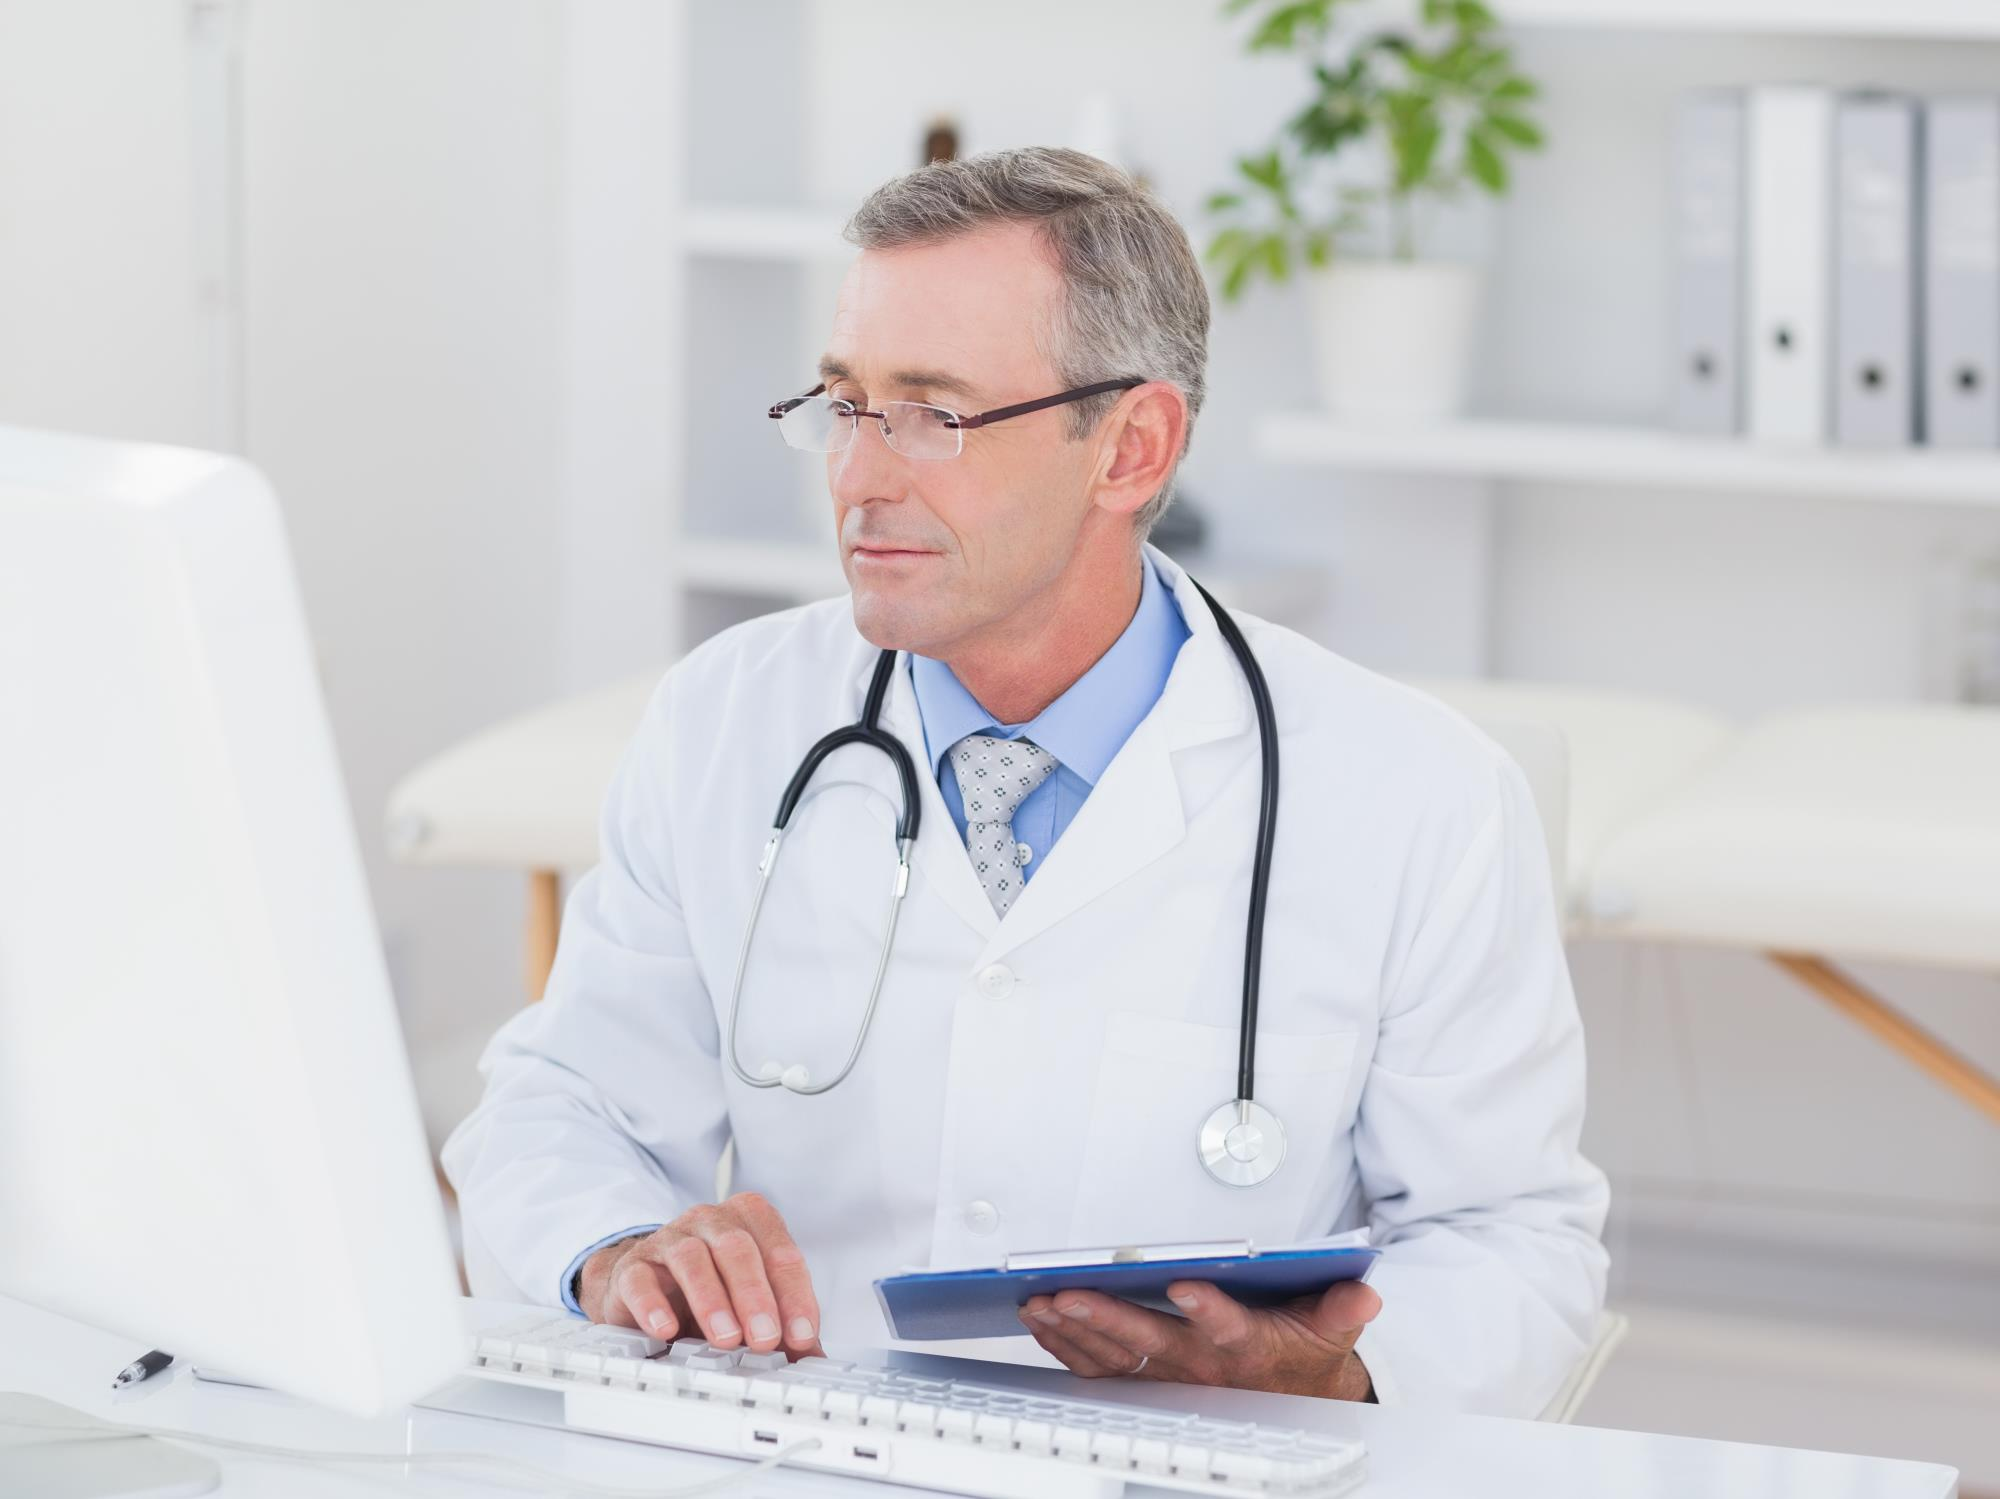 CipherPost Pro offers healthcare providers the most flexible solution to help